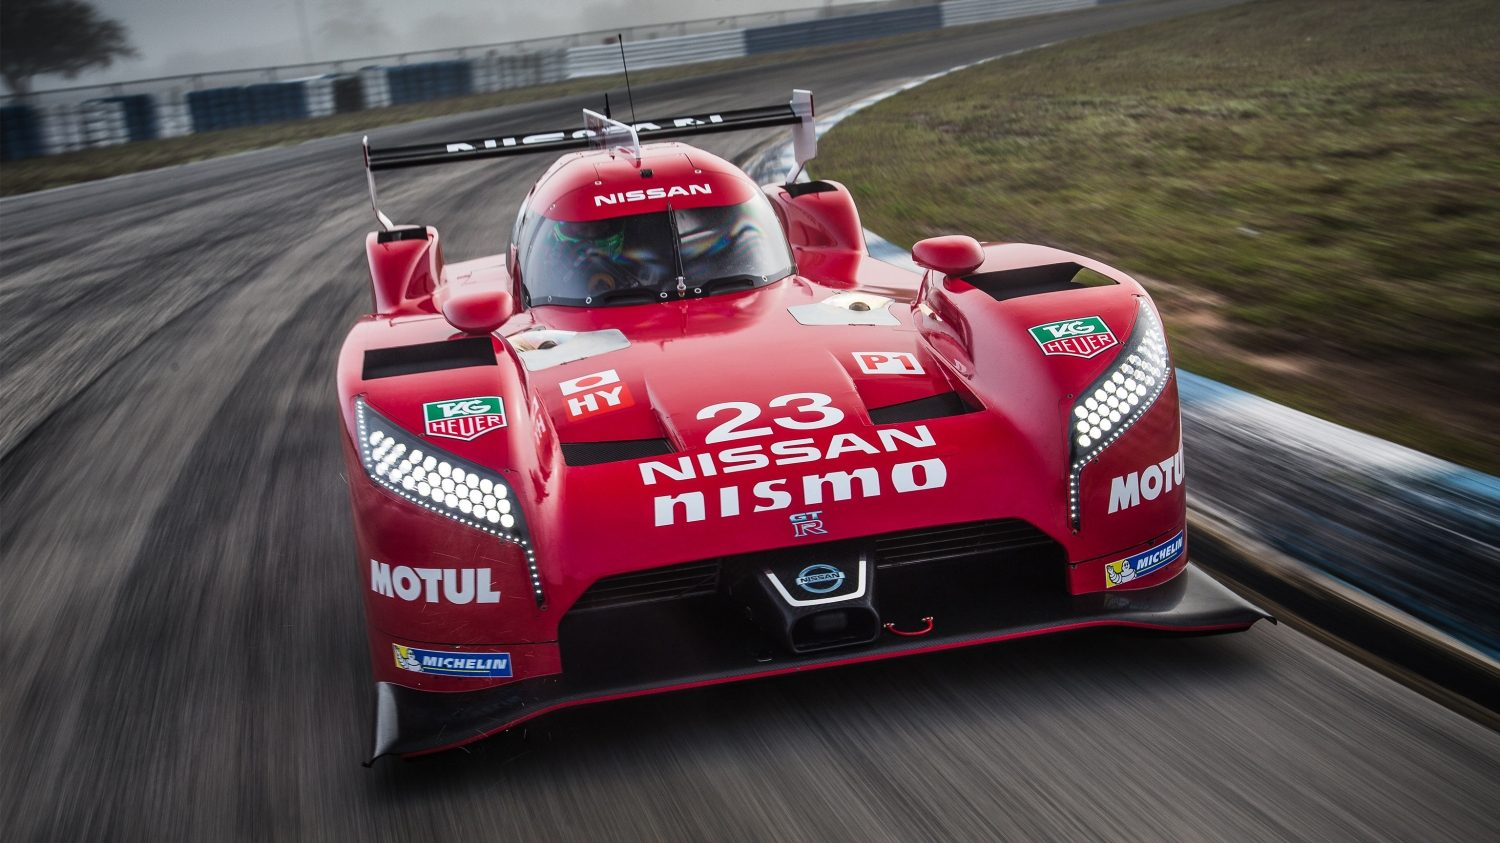 Nissan - Motorsport - GT-R LM NISMO on track - front view